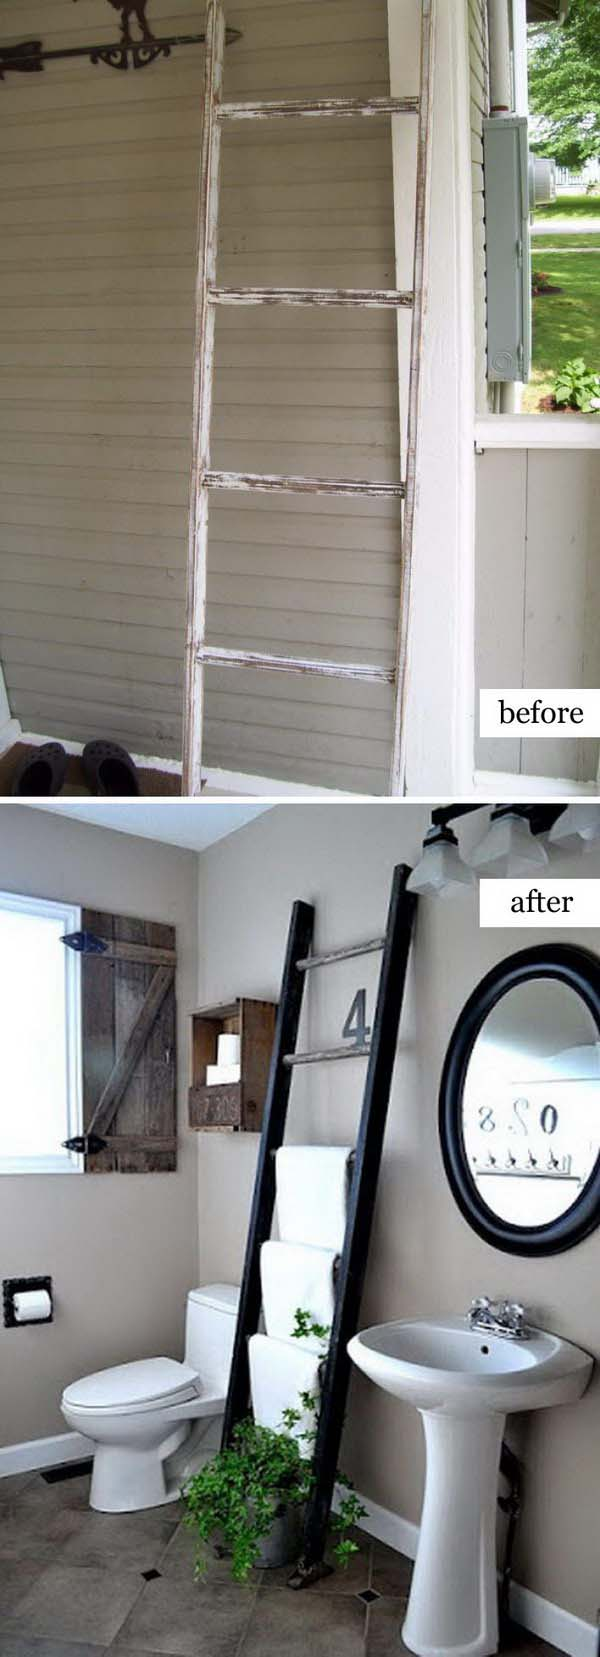 Ladder Towel Rack #furniture #makeover #diy #decorhomeideas